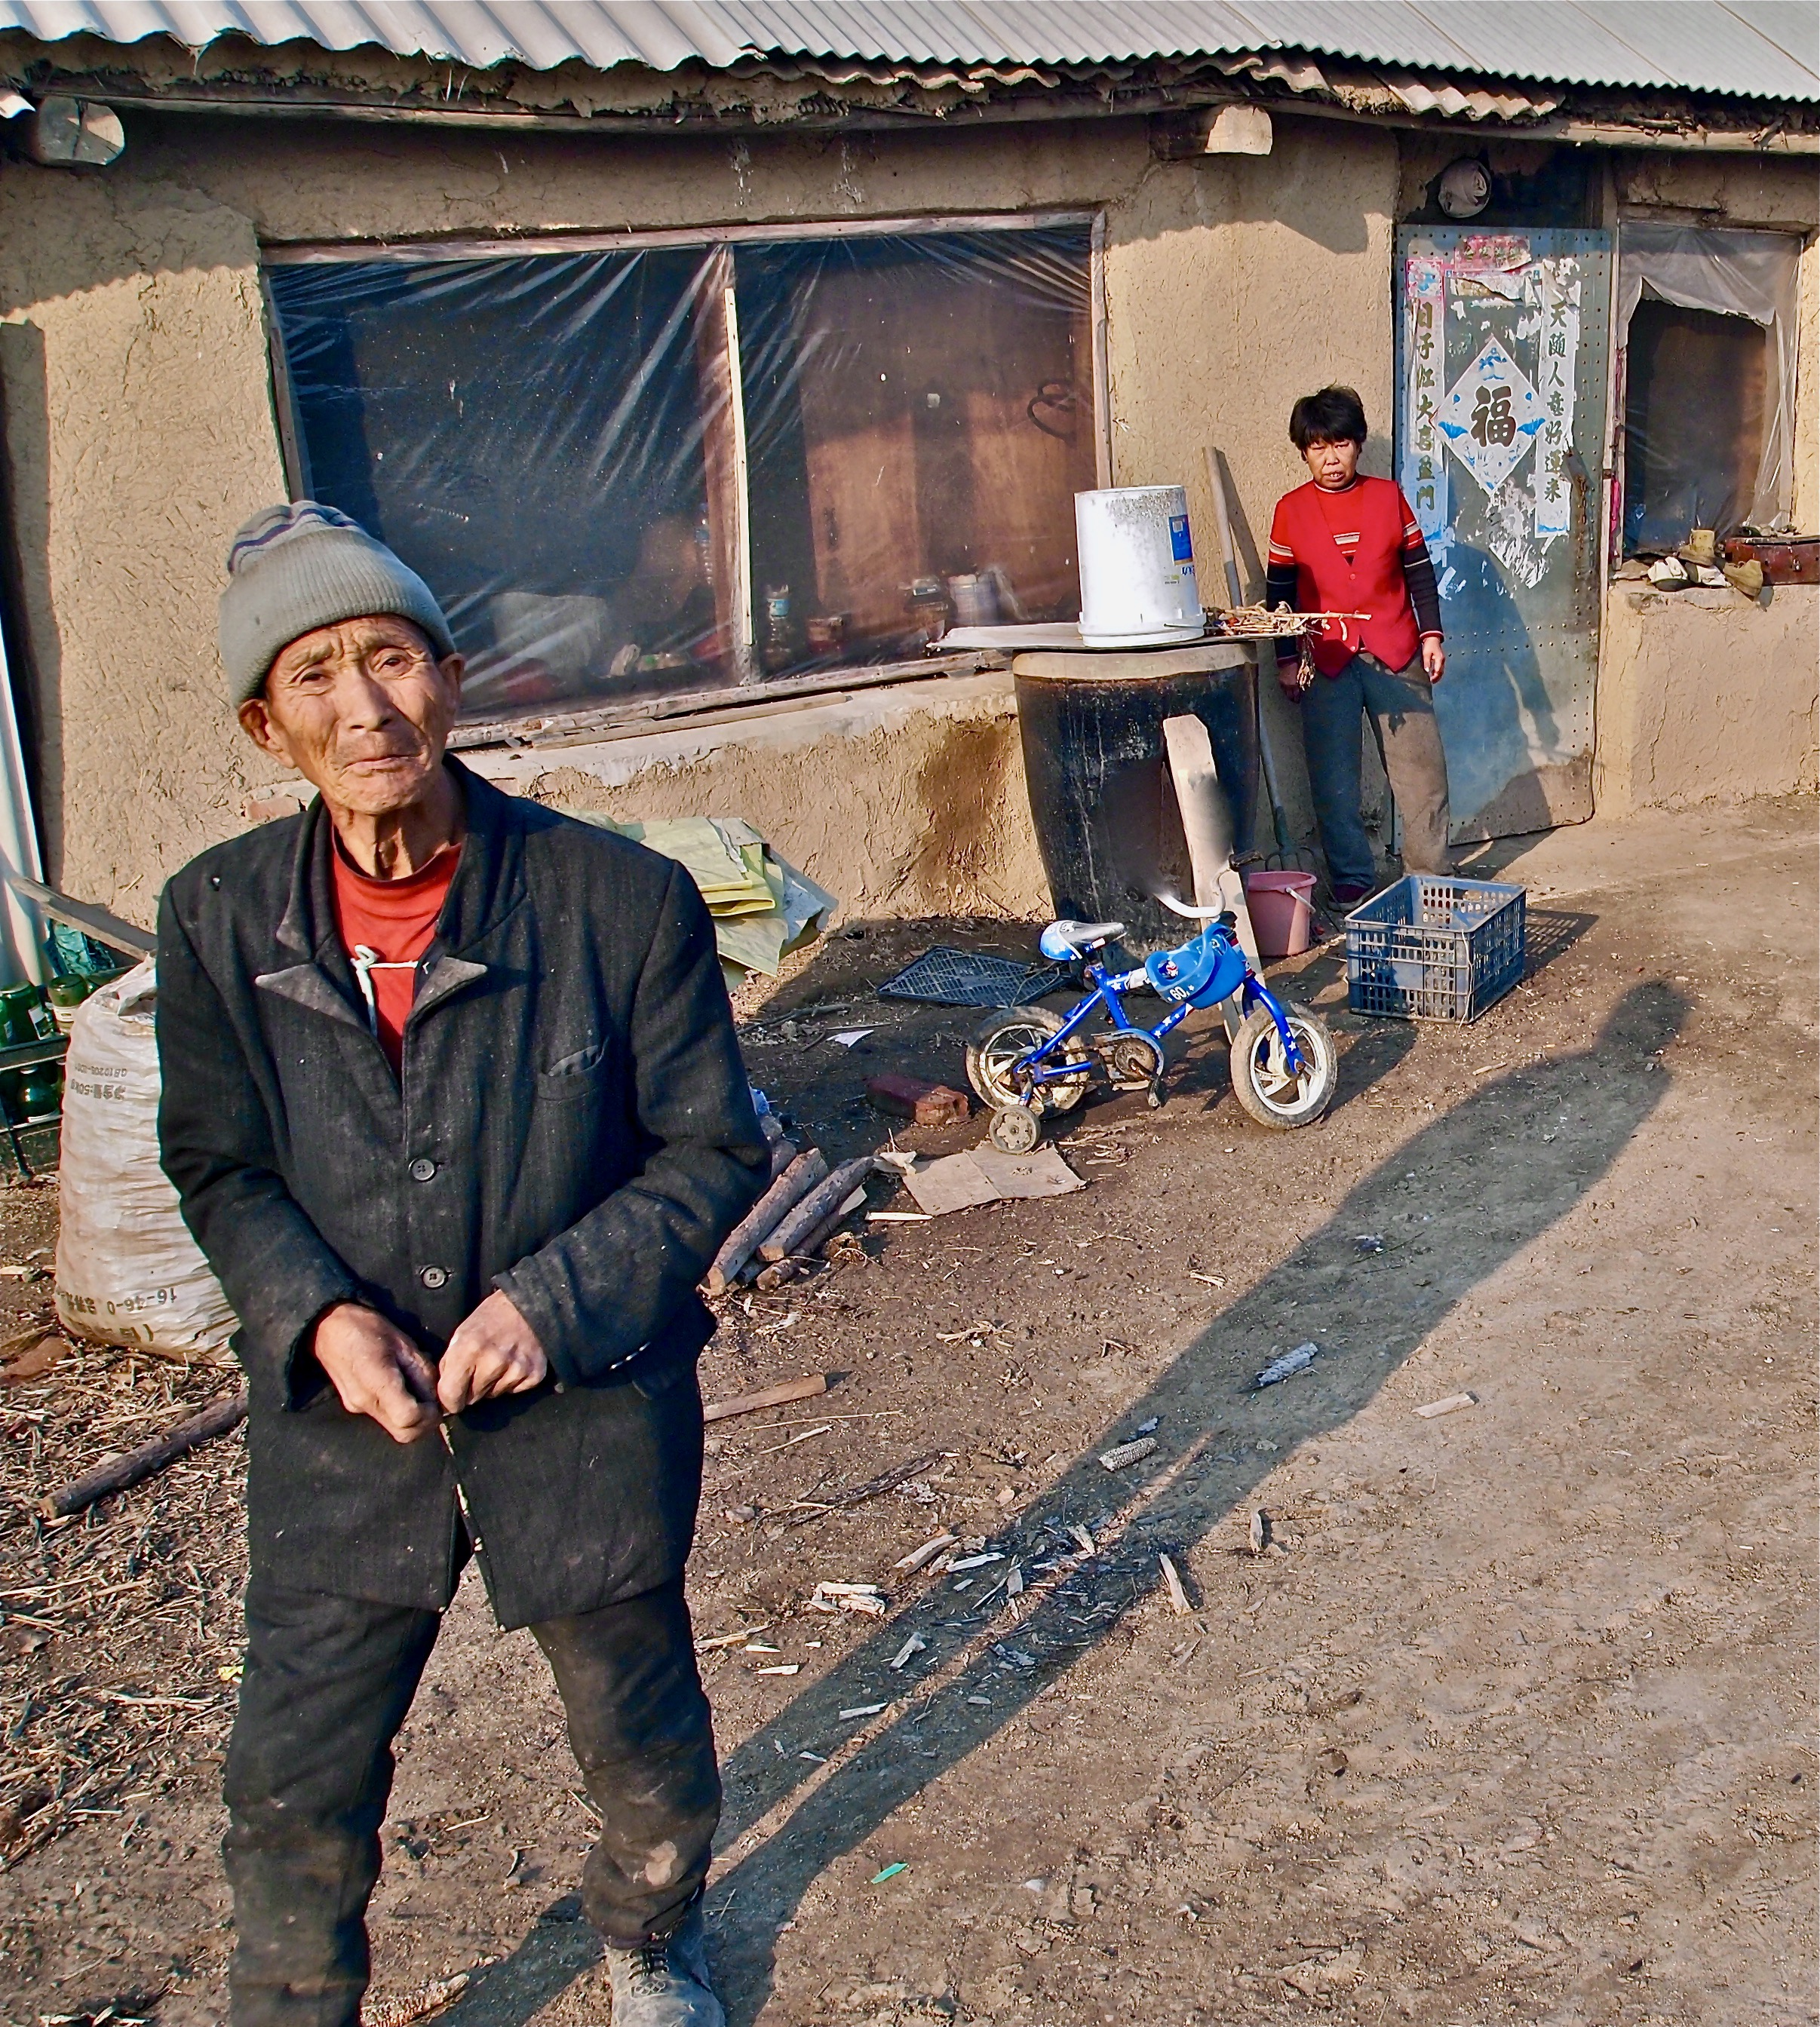 - In China's far north, a small town has been cut from the grid. The government wants the villagers to move to a bigger town. So far though, they're staying put.